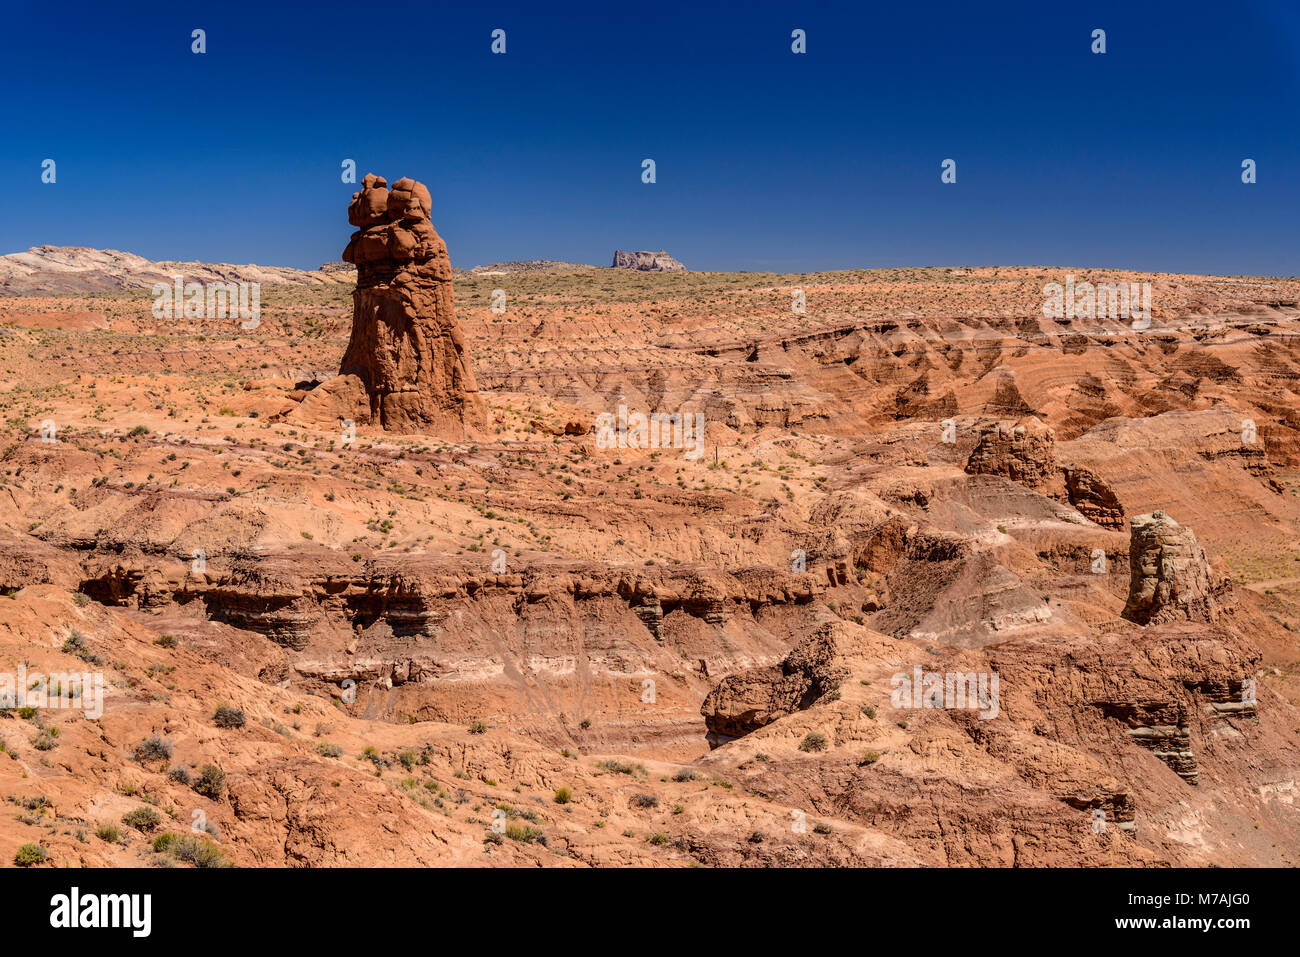 The USA, Utah, Emery County, Green River, Goblin Valley State Park, Carmel Canyon - Stock Image